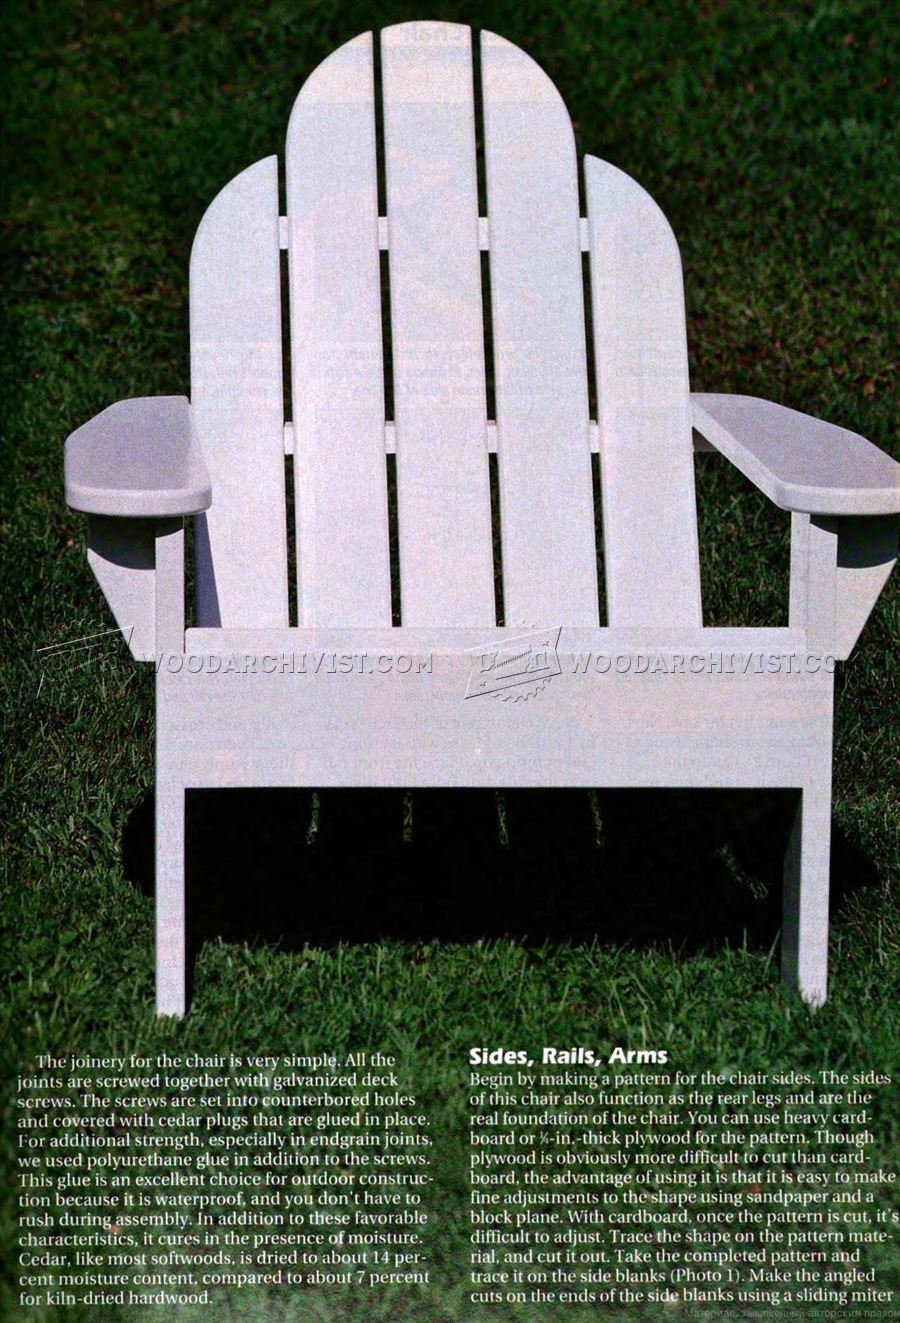 folding wooden chair pedicure and manicure chairs classic adirondack plans • woodarchivist